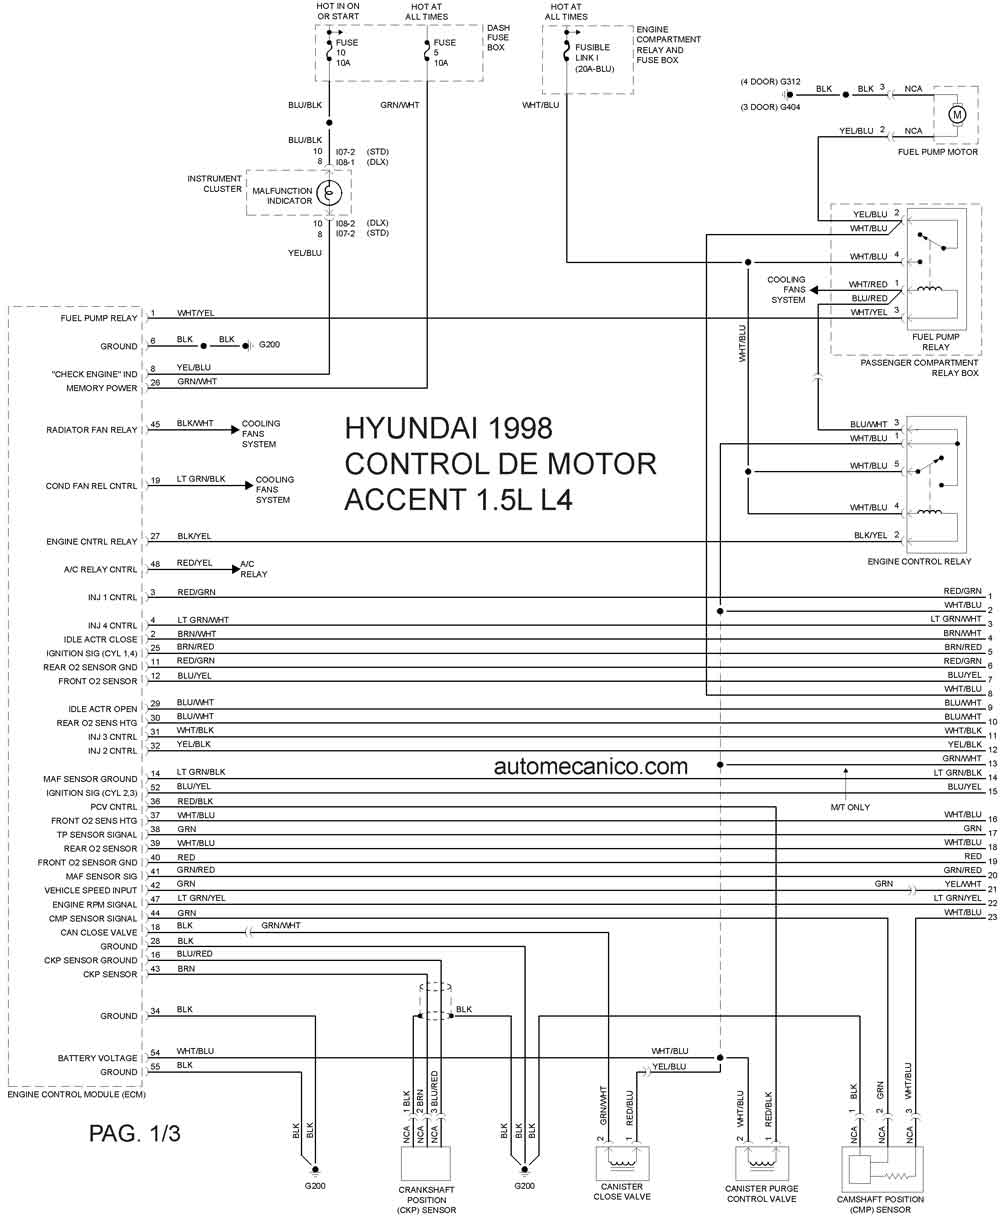 Hyundai Santro Wiring Diagram Pdf Great Installation Of Trailer Library Rh 99 Budoshop4you De Rockville Amp